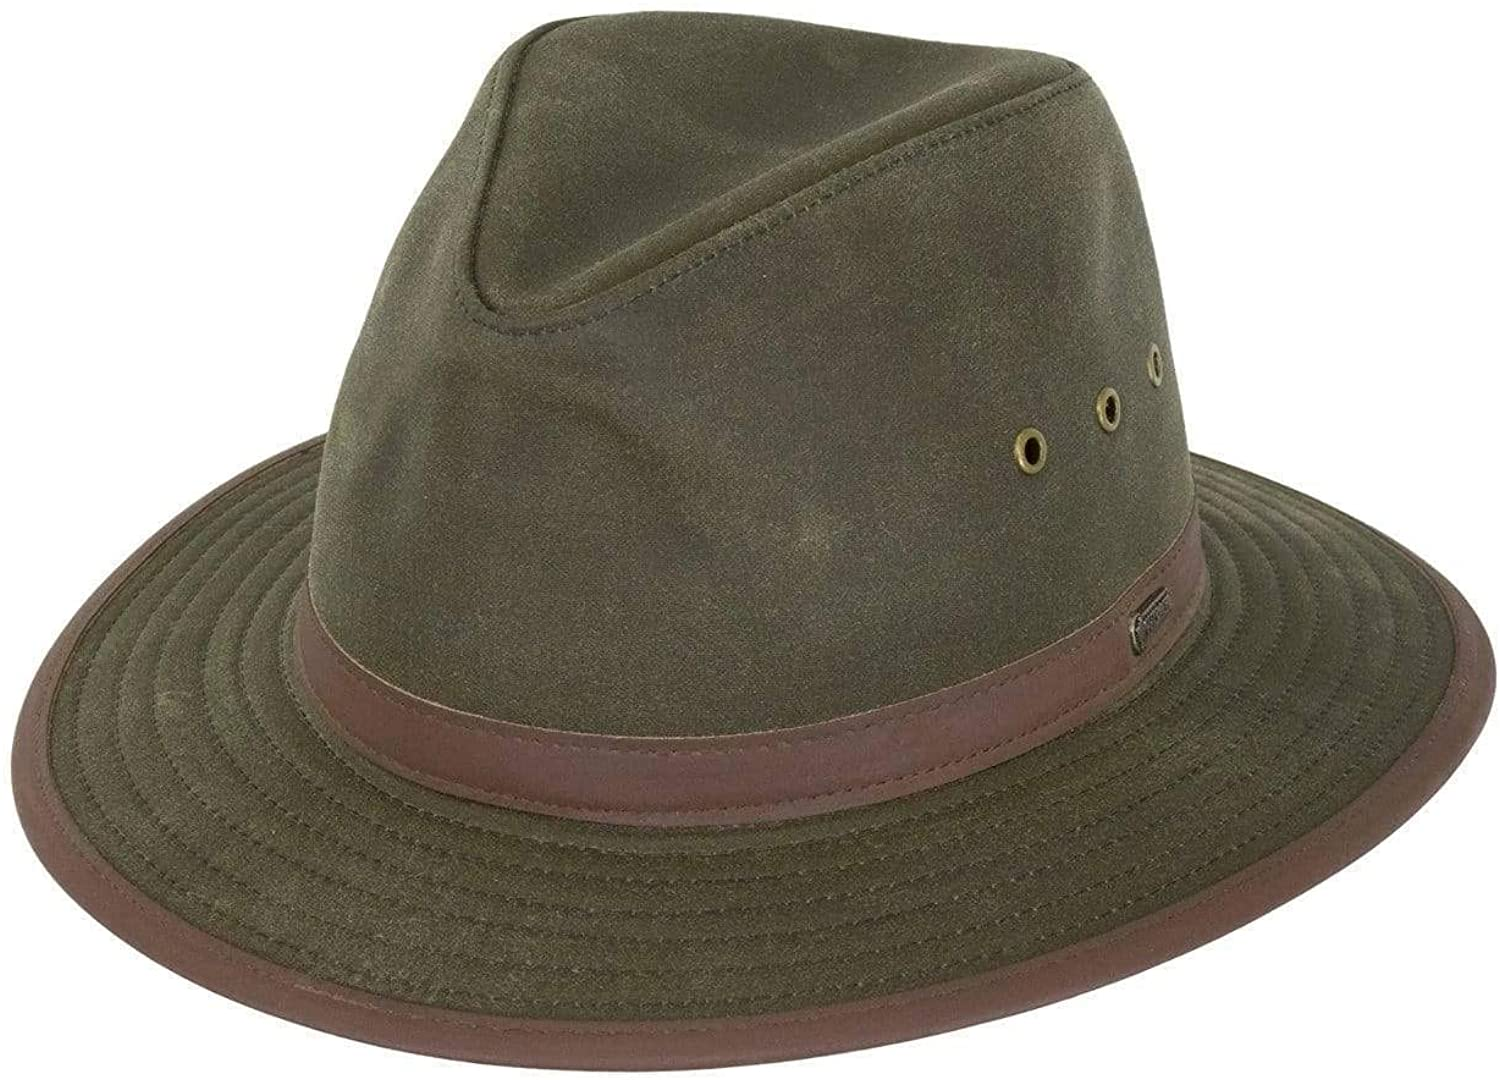 Outback Trading Men's 1462 River Sun-Protective Waterpro specialty shop overseas Madison